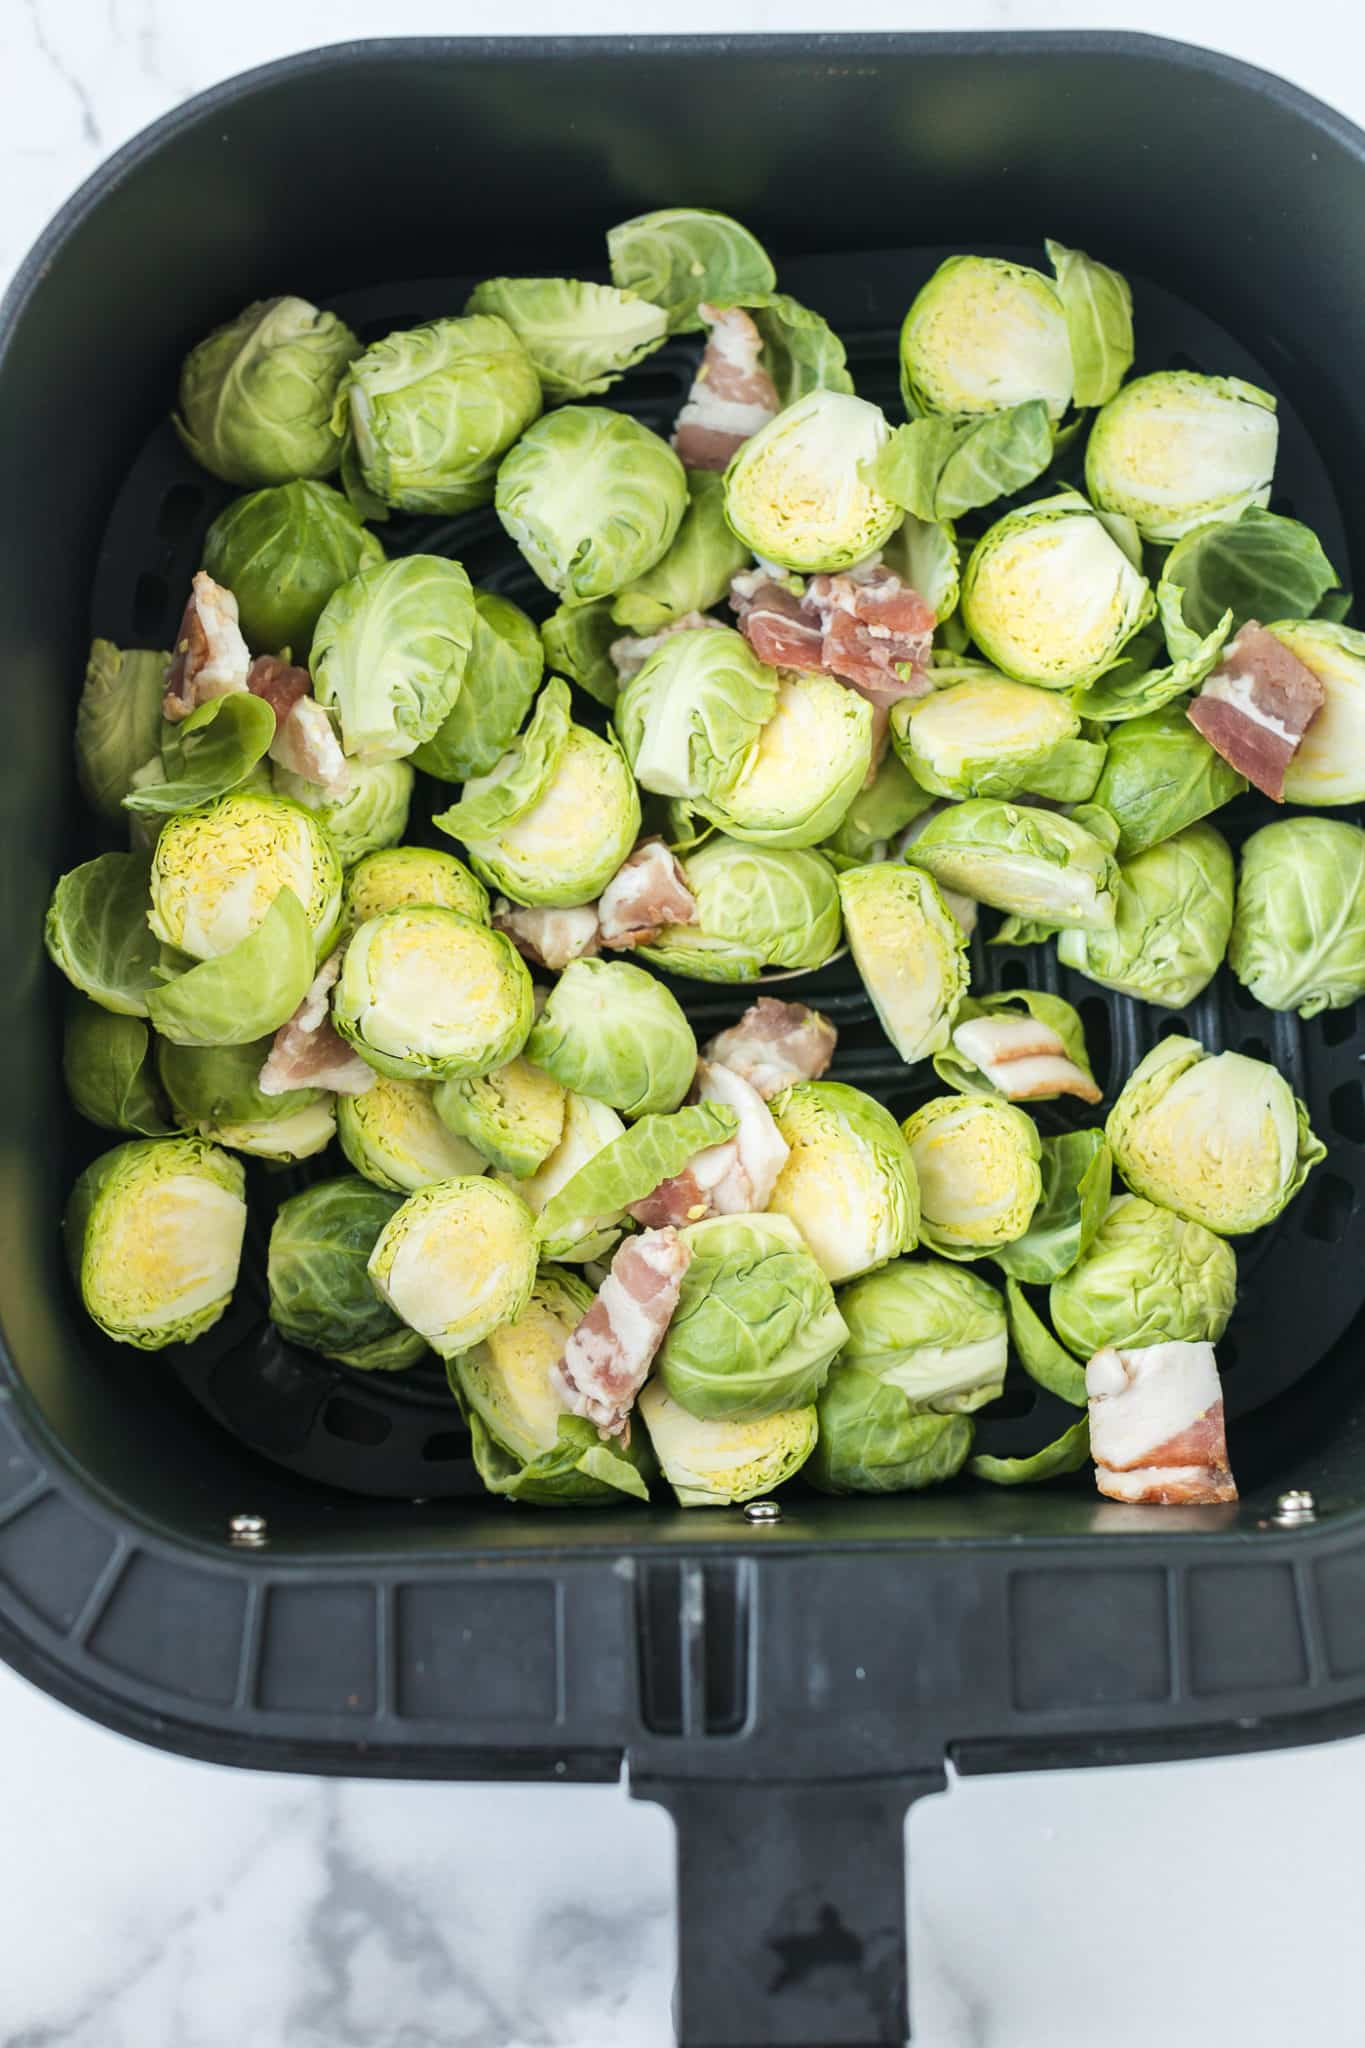 bacon and brussels sprouts in the basket of an air fryer ready to be cooked